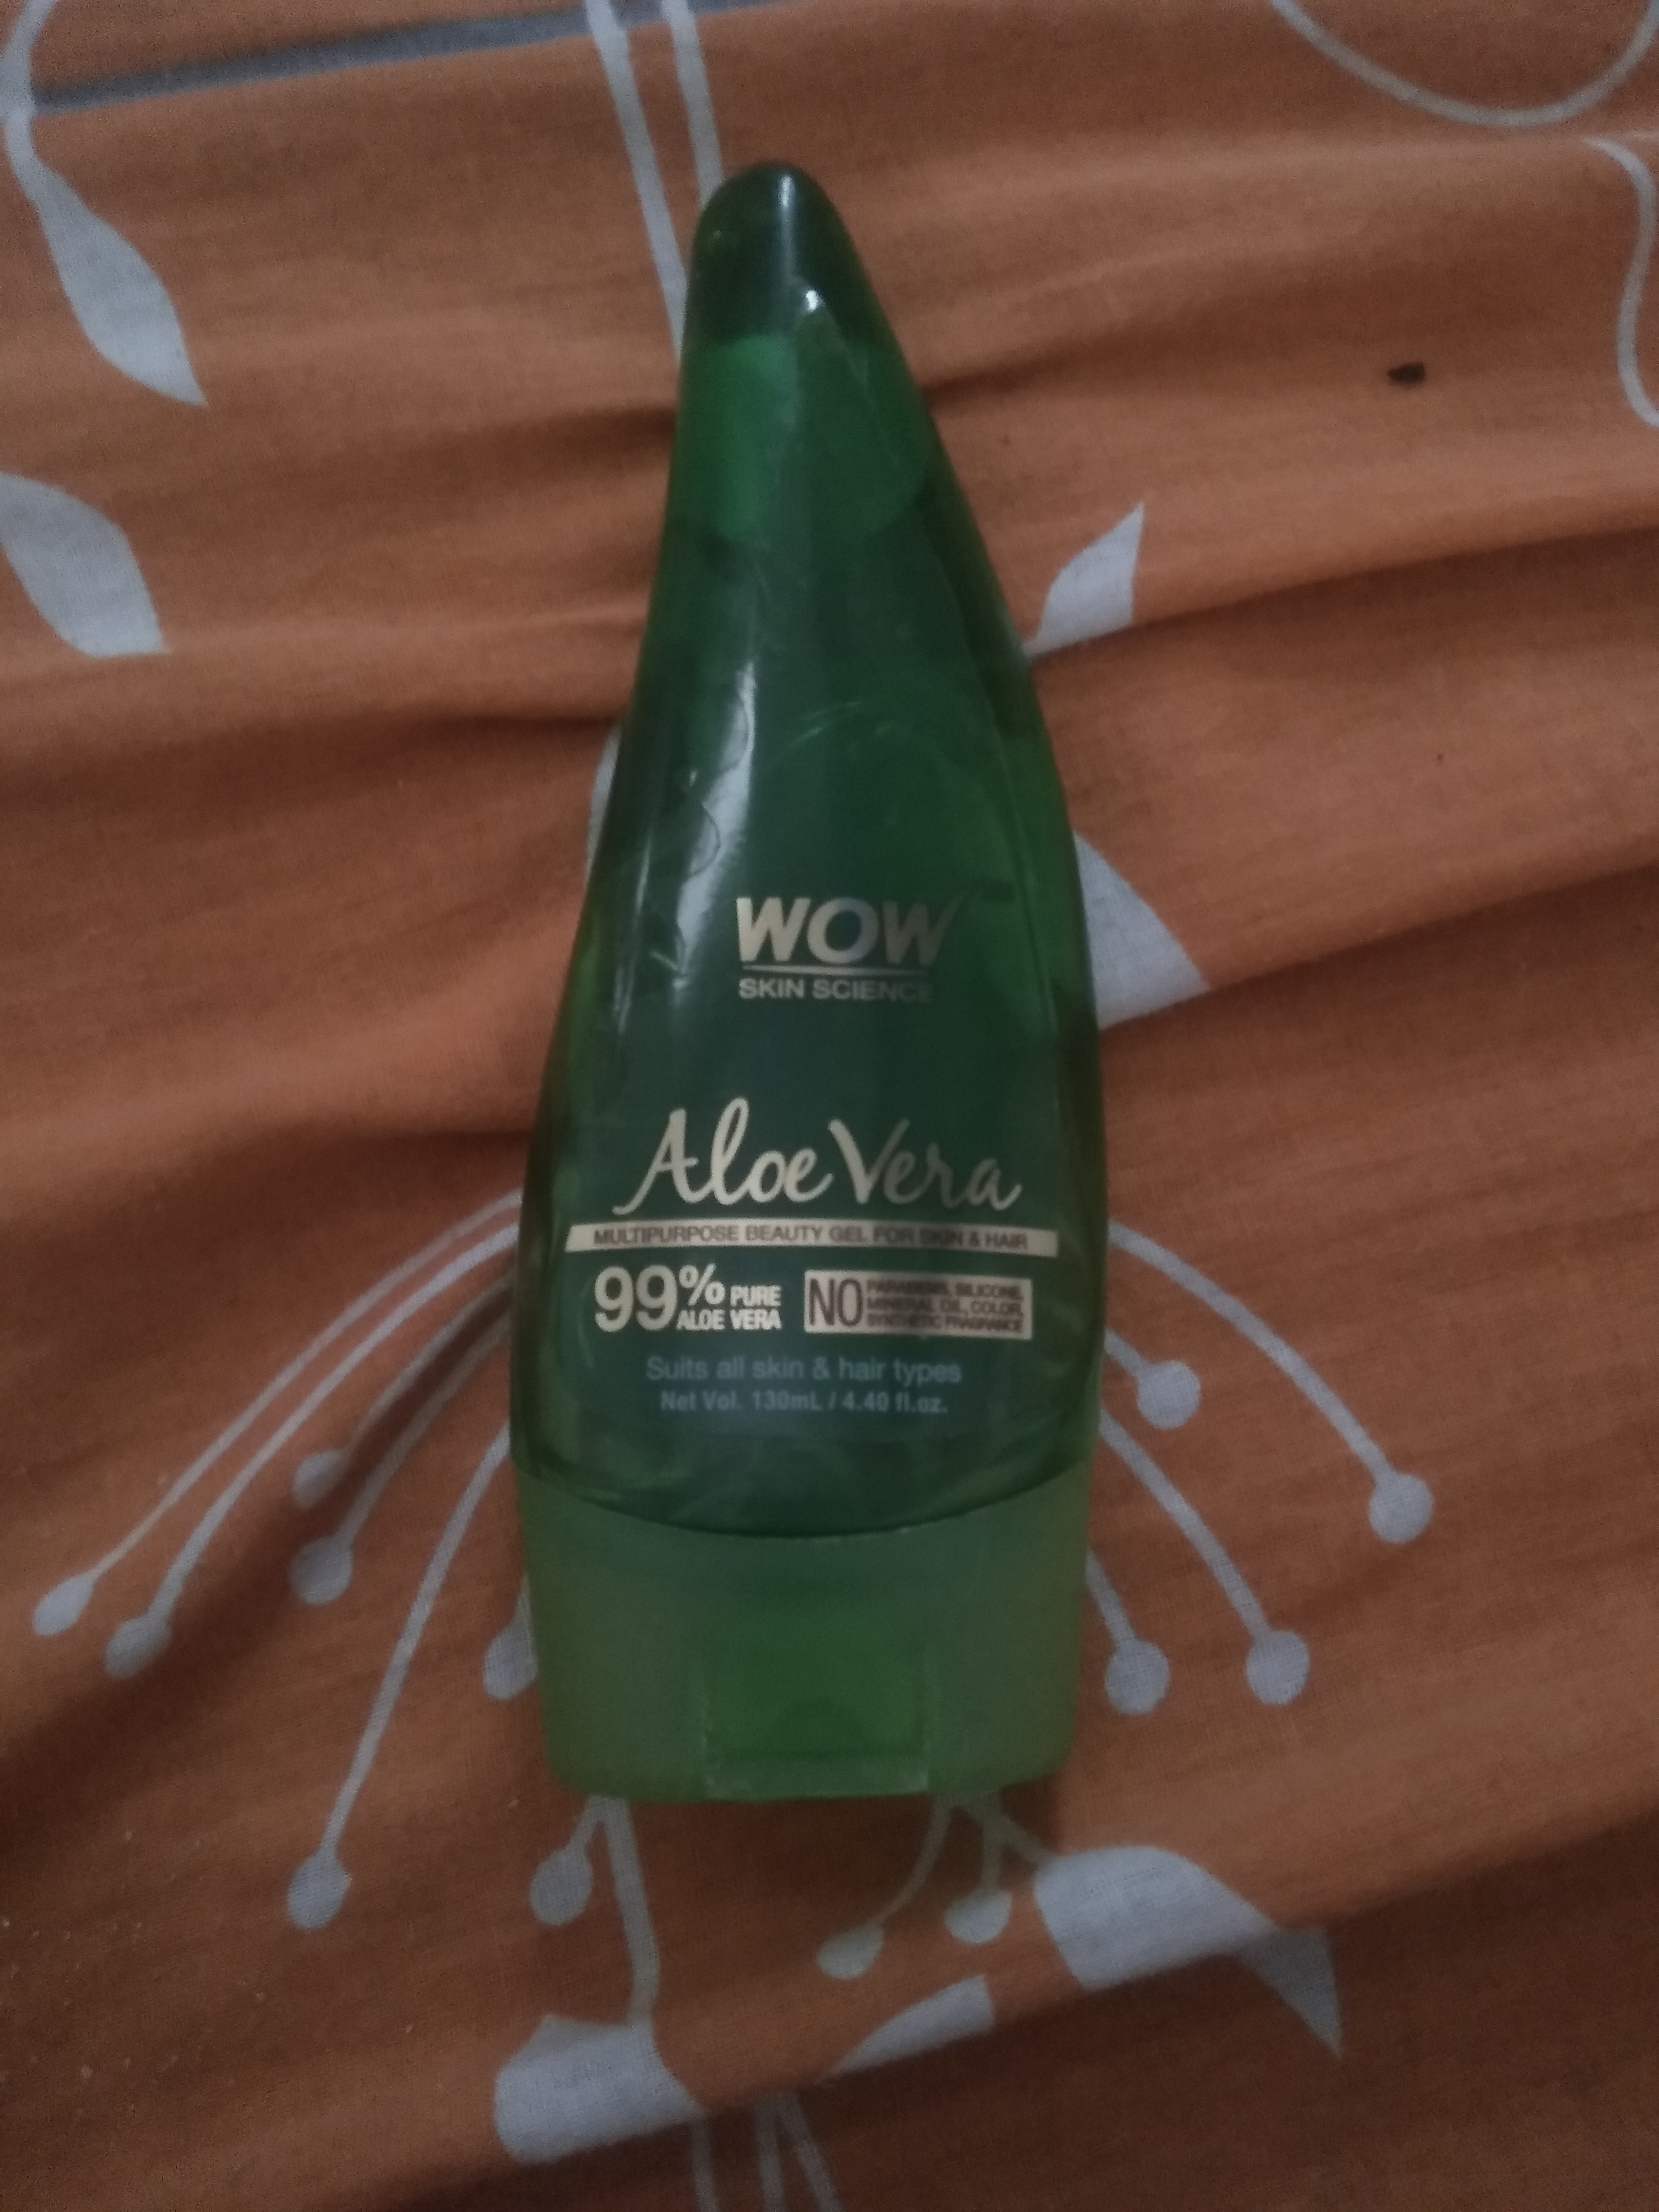 WOW Skin Science Aloe Vera Gel-WOW product-By amayra